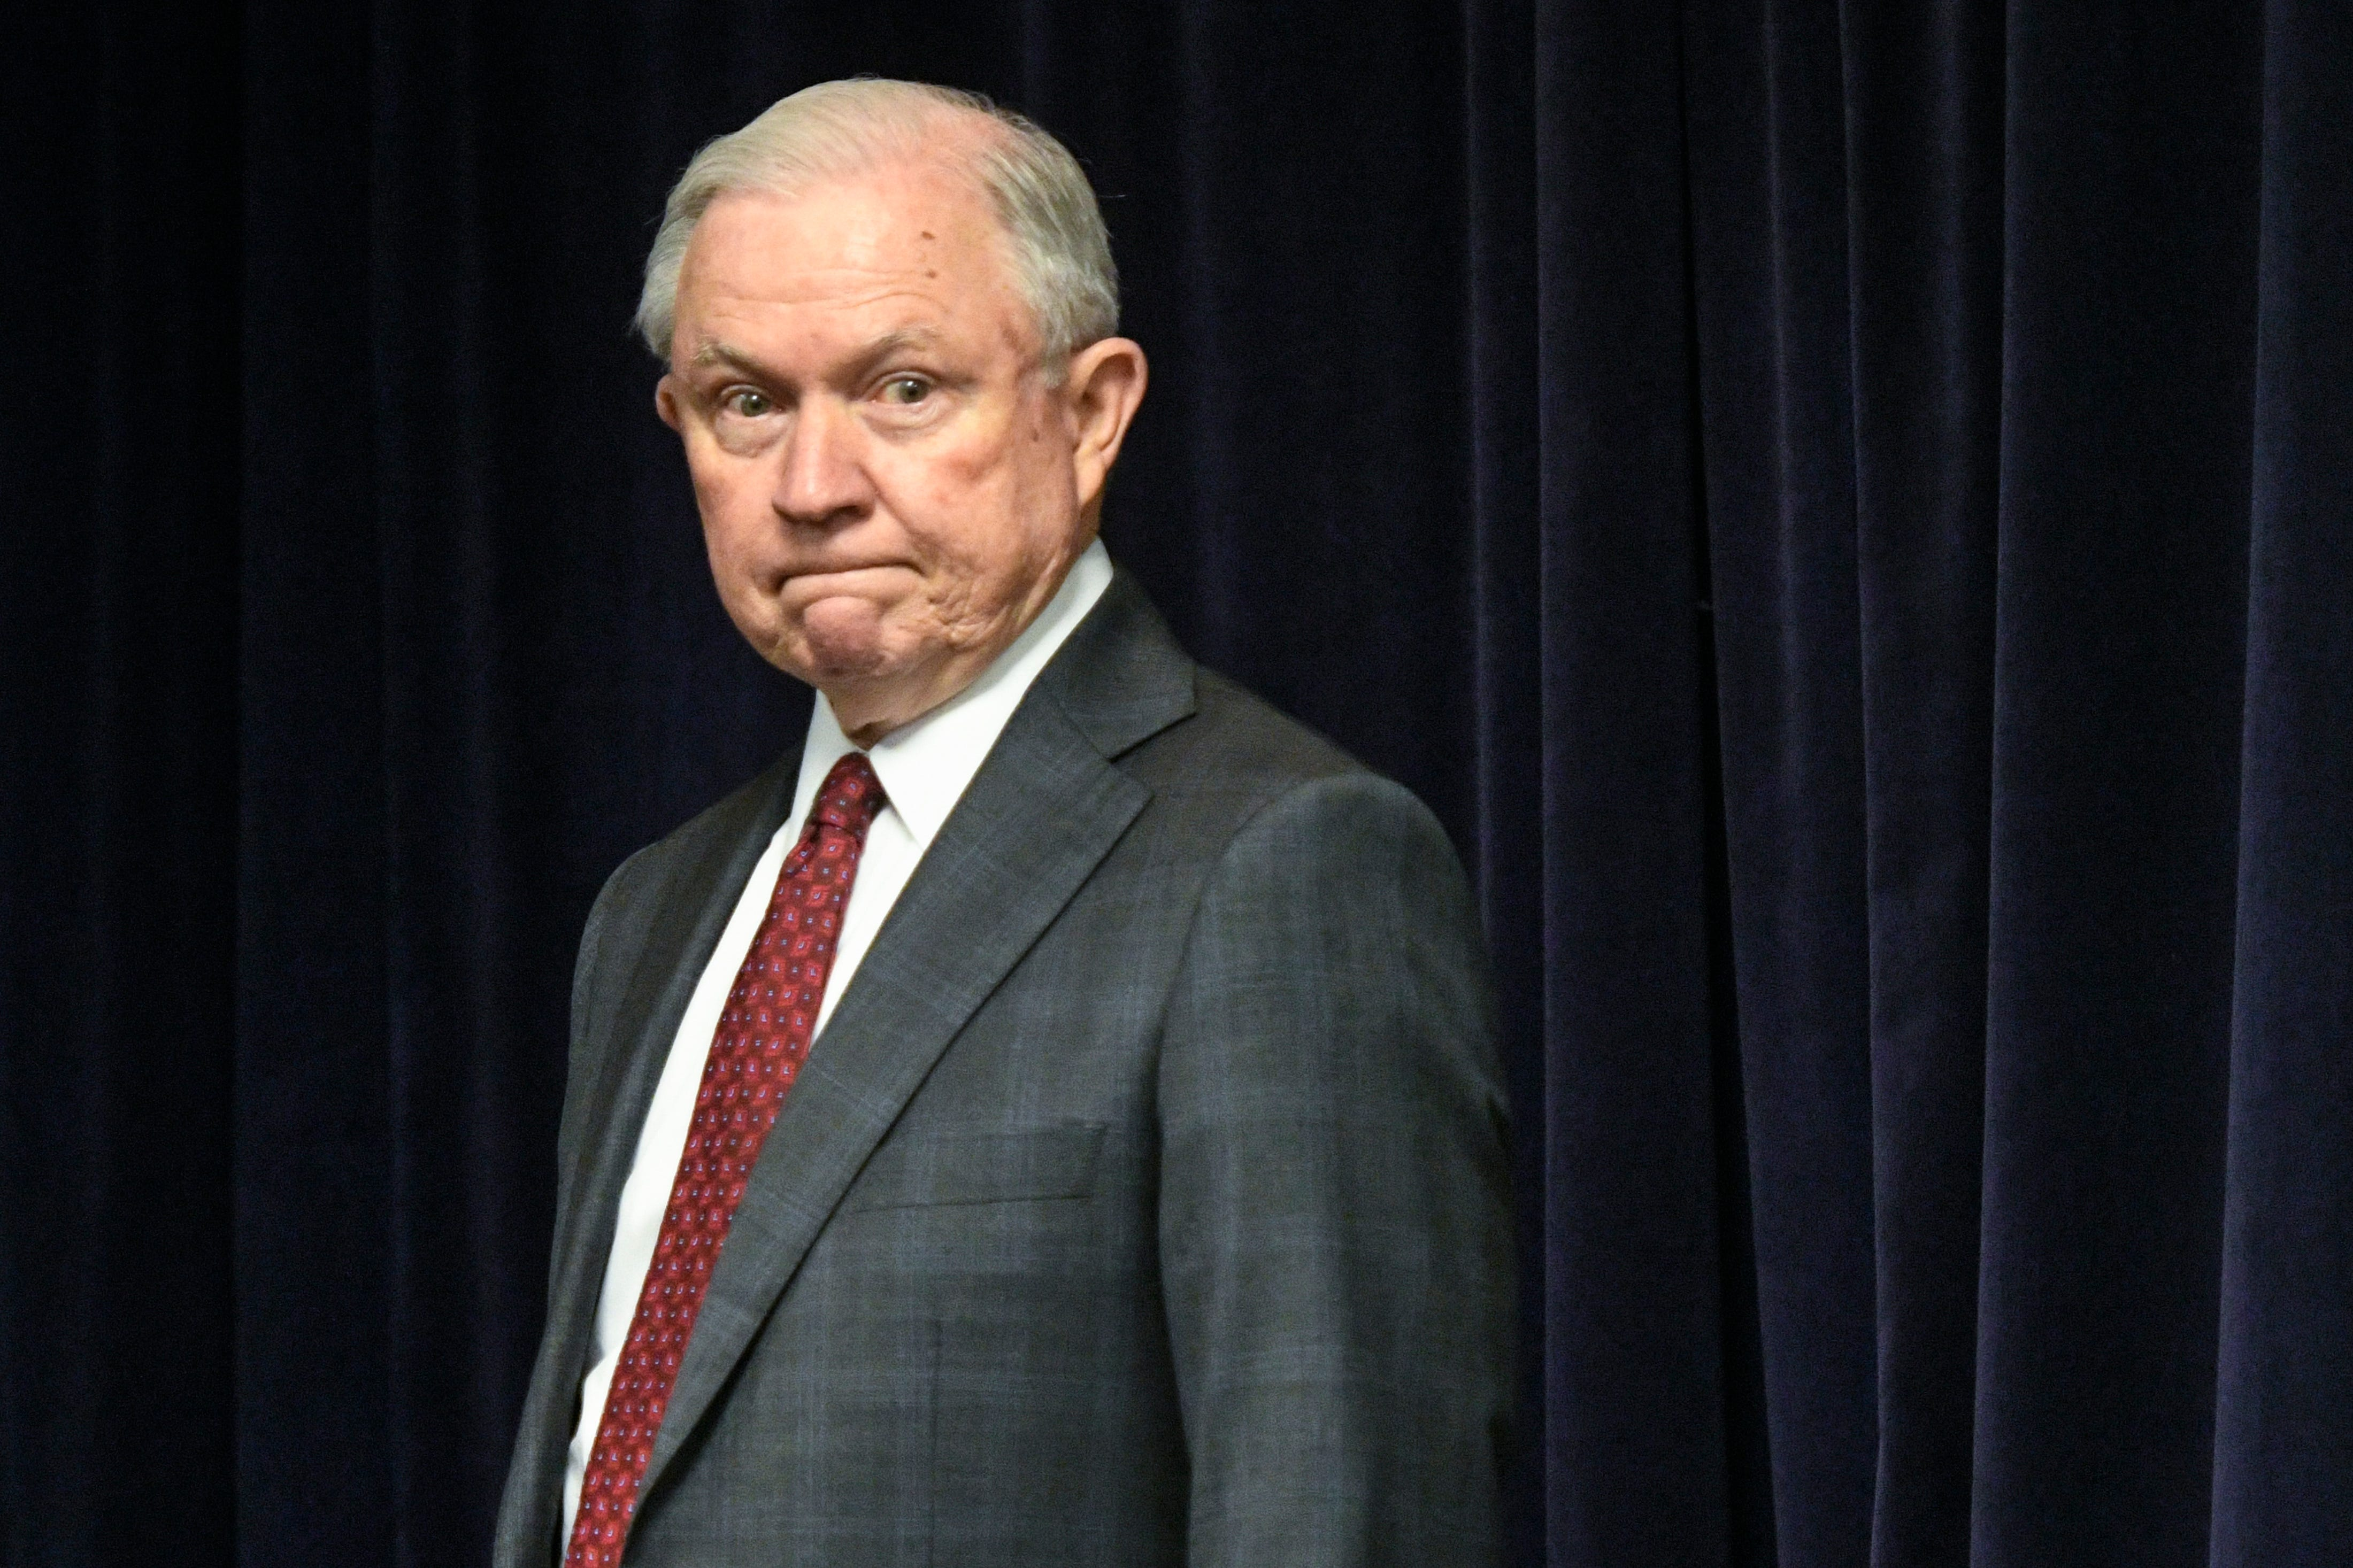 Houston restaurant owner apologizes after facing backlash over Jeff Sessions' photo